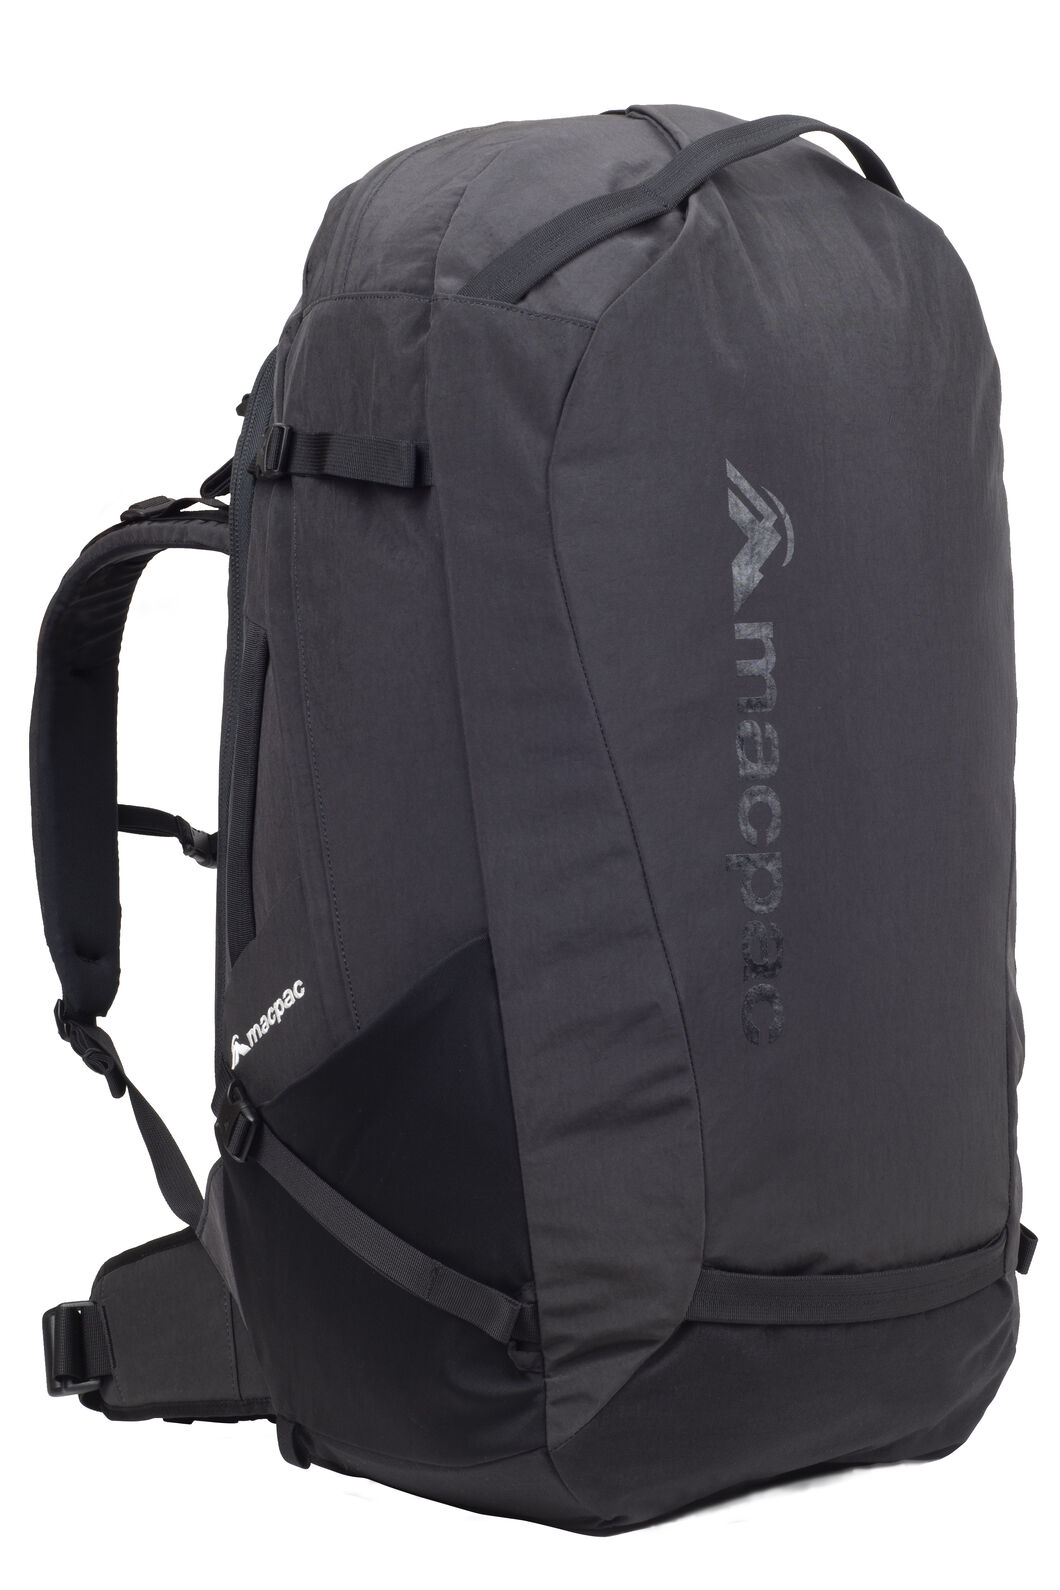 Macpac Exchange 62L Duffel, Black, hi-res